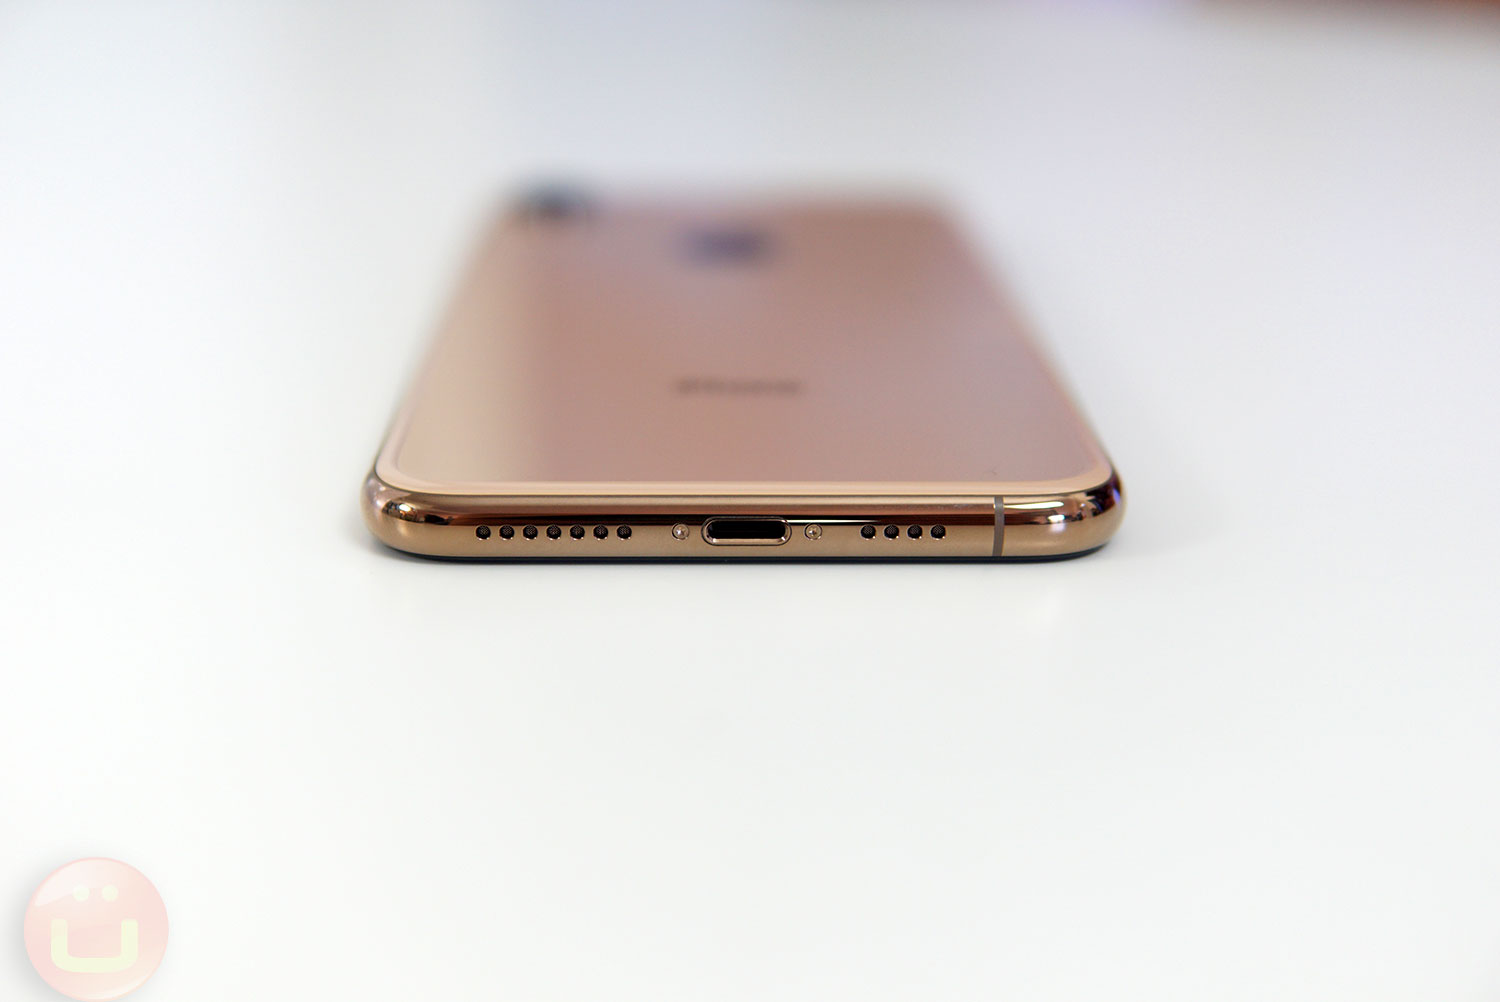 2019's iPhones Might Ship With A USB-C Charger